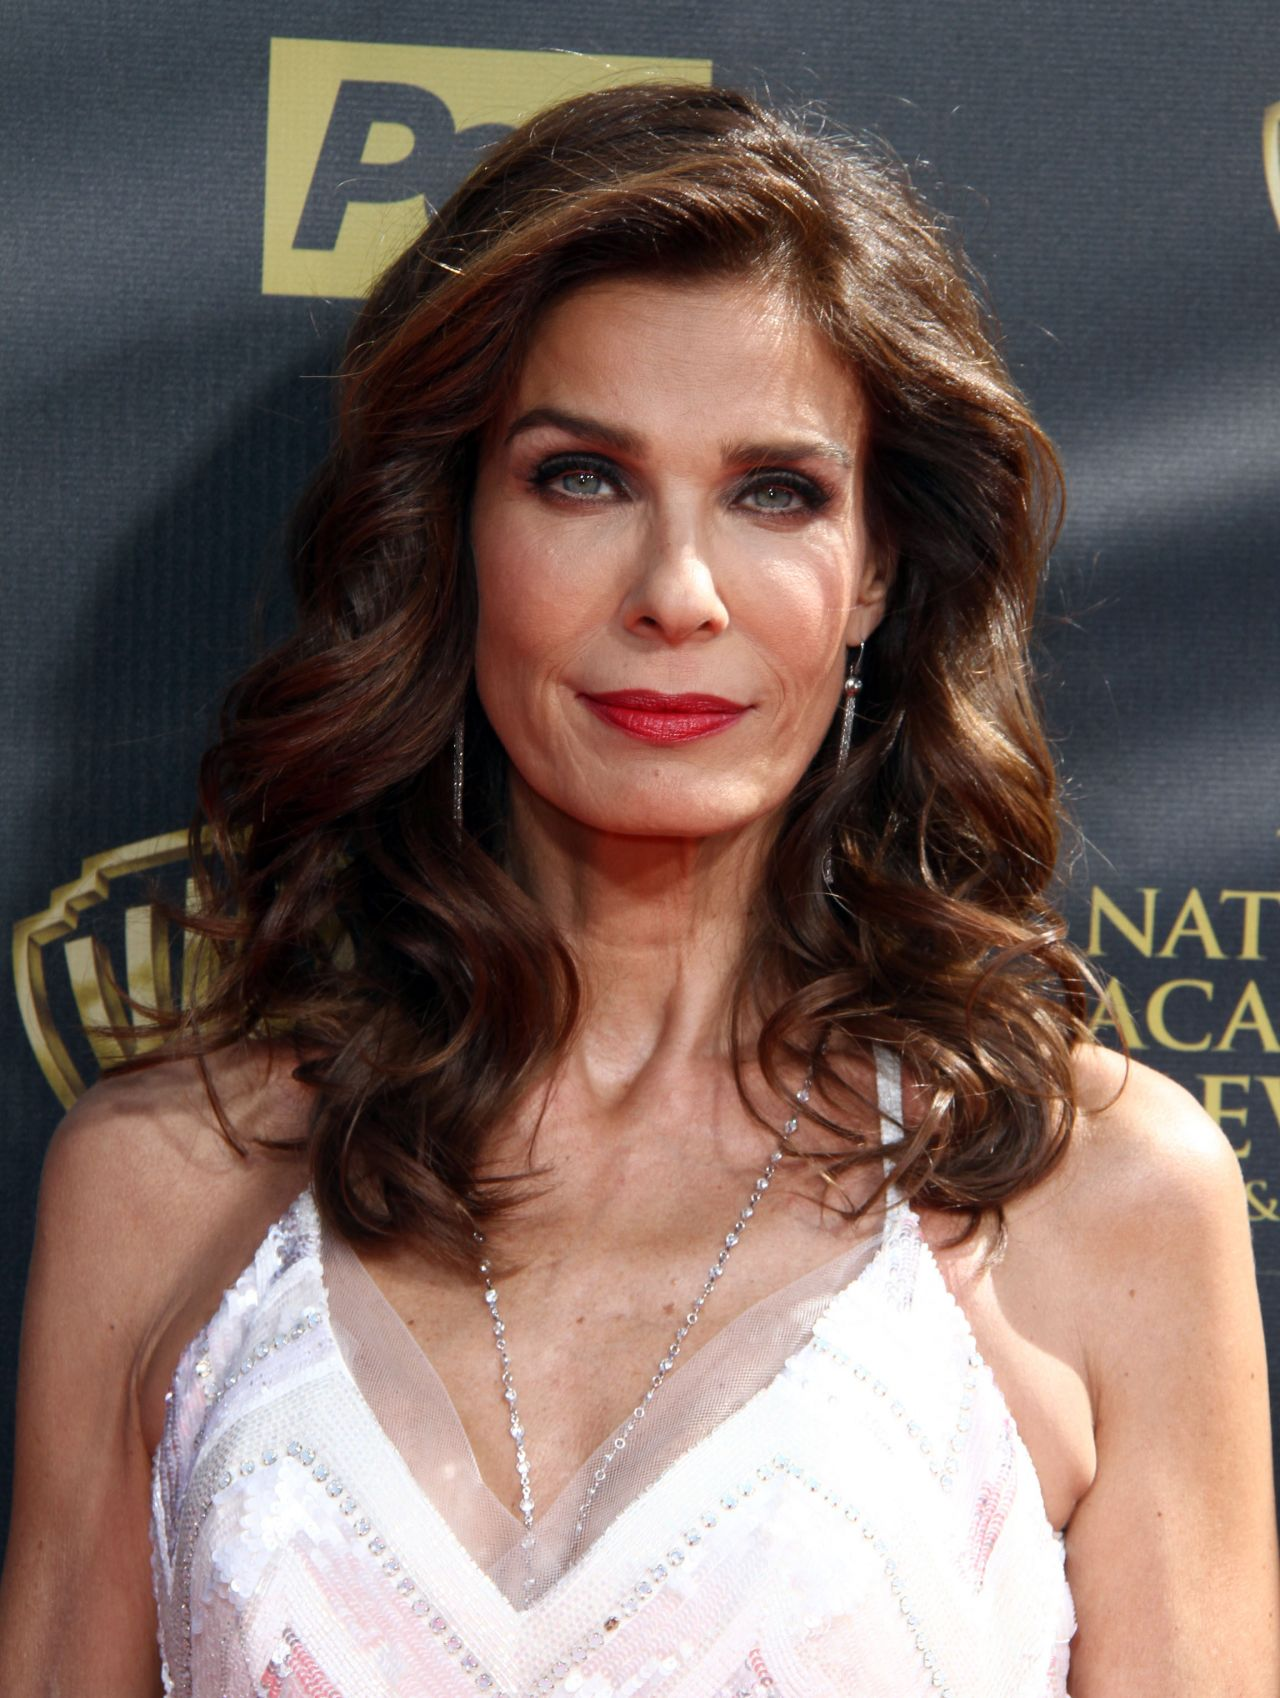 kristian alfonso married